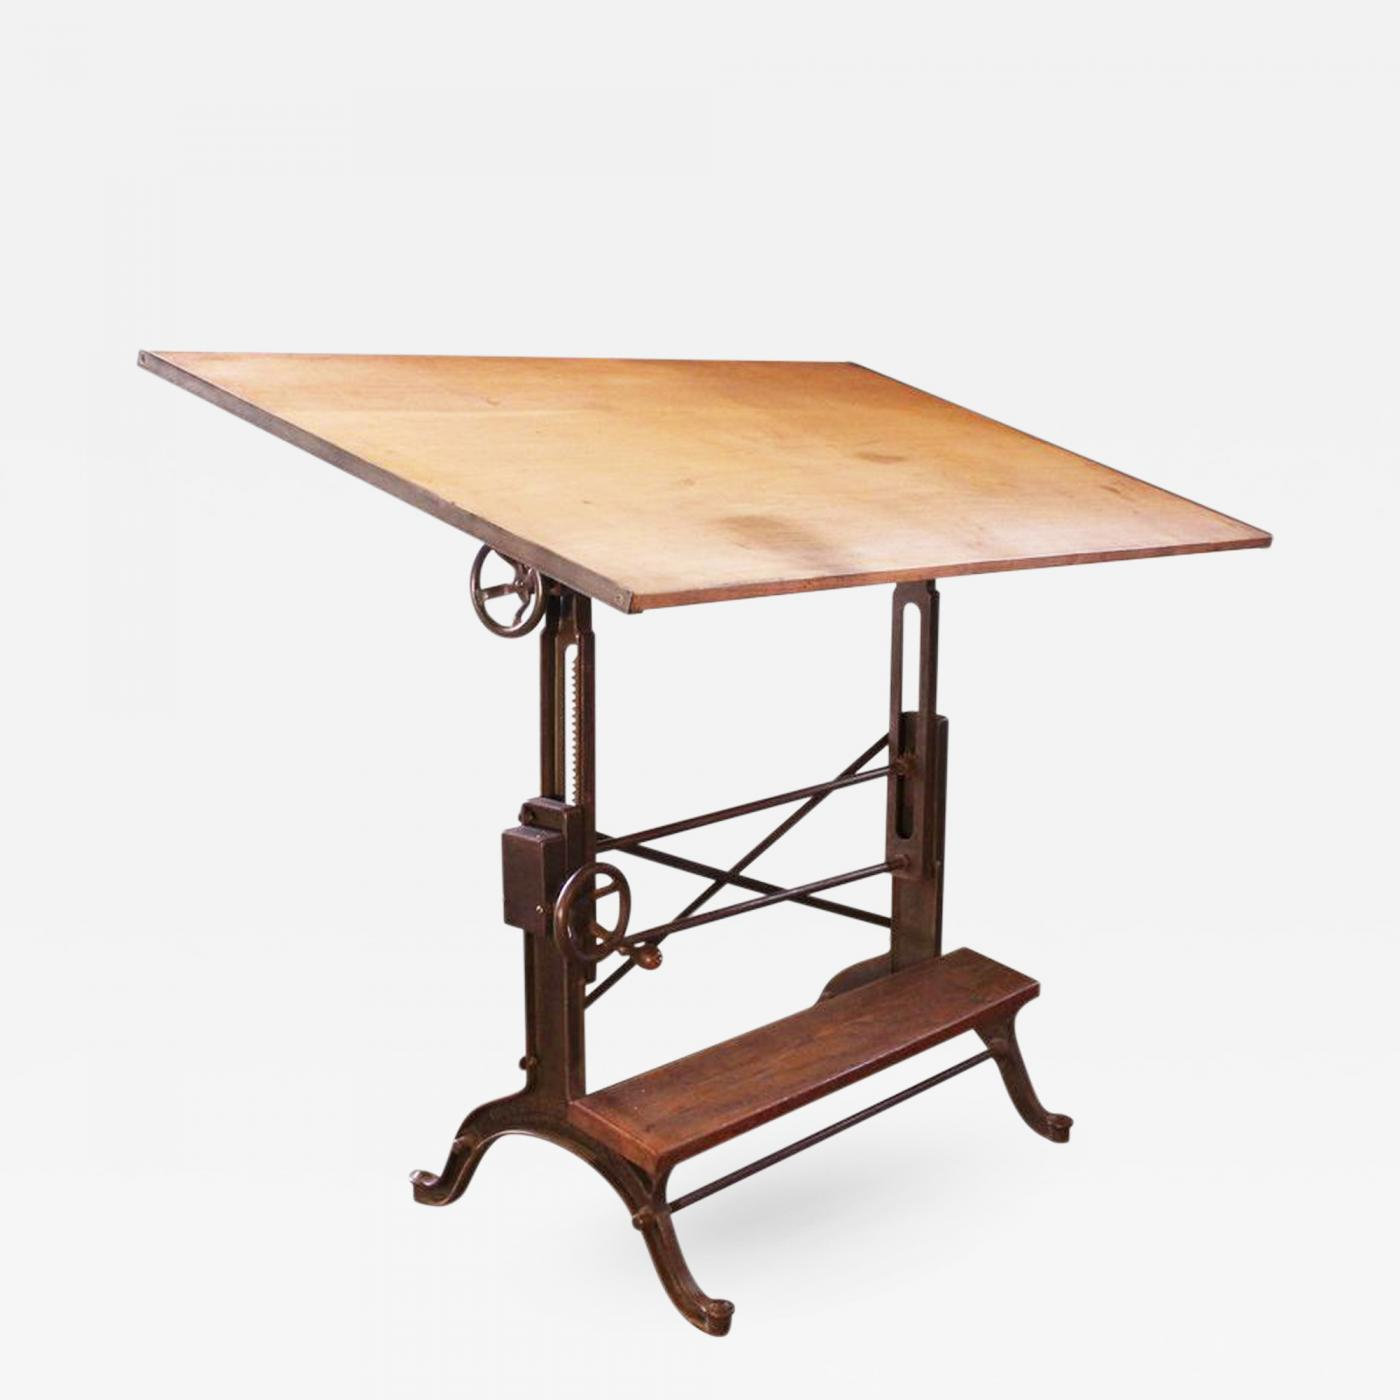 Adjustable Height Drafting Table Vintage Industrial Cast Iron And Wood Frederick Post Adjustable Drafting Table